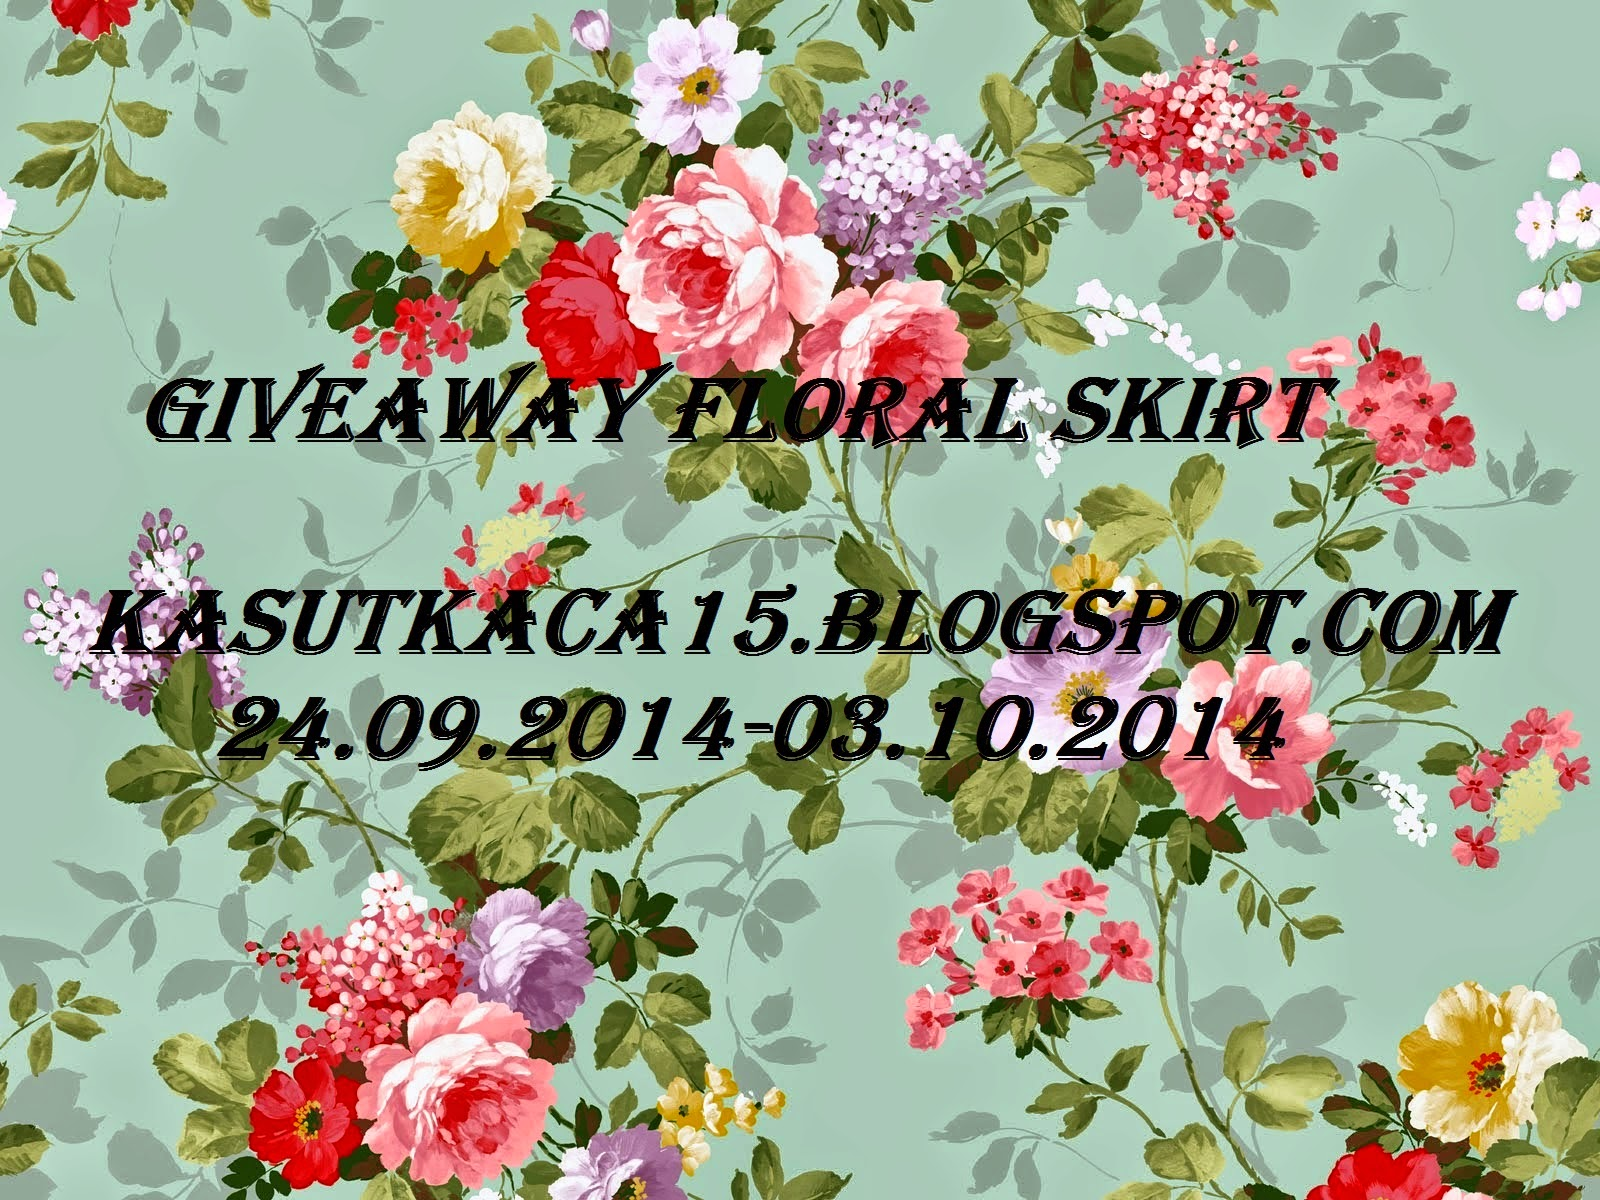 GIVEAWAY FLORAL SKIRT